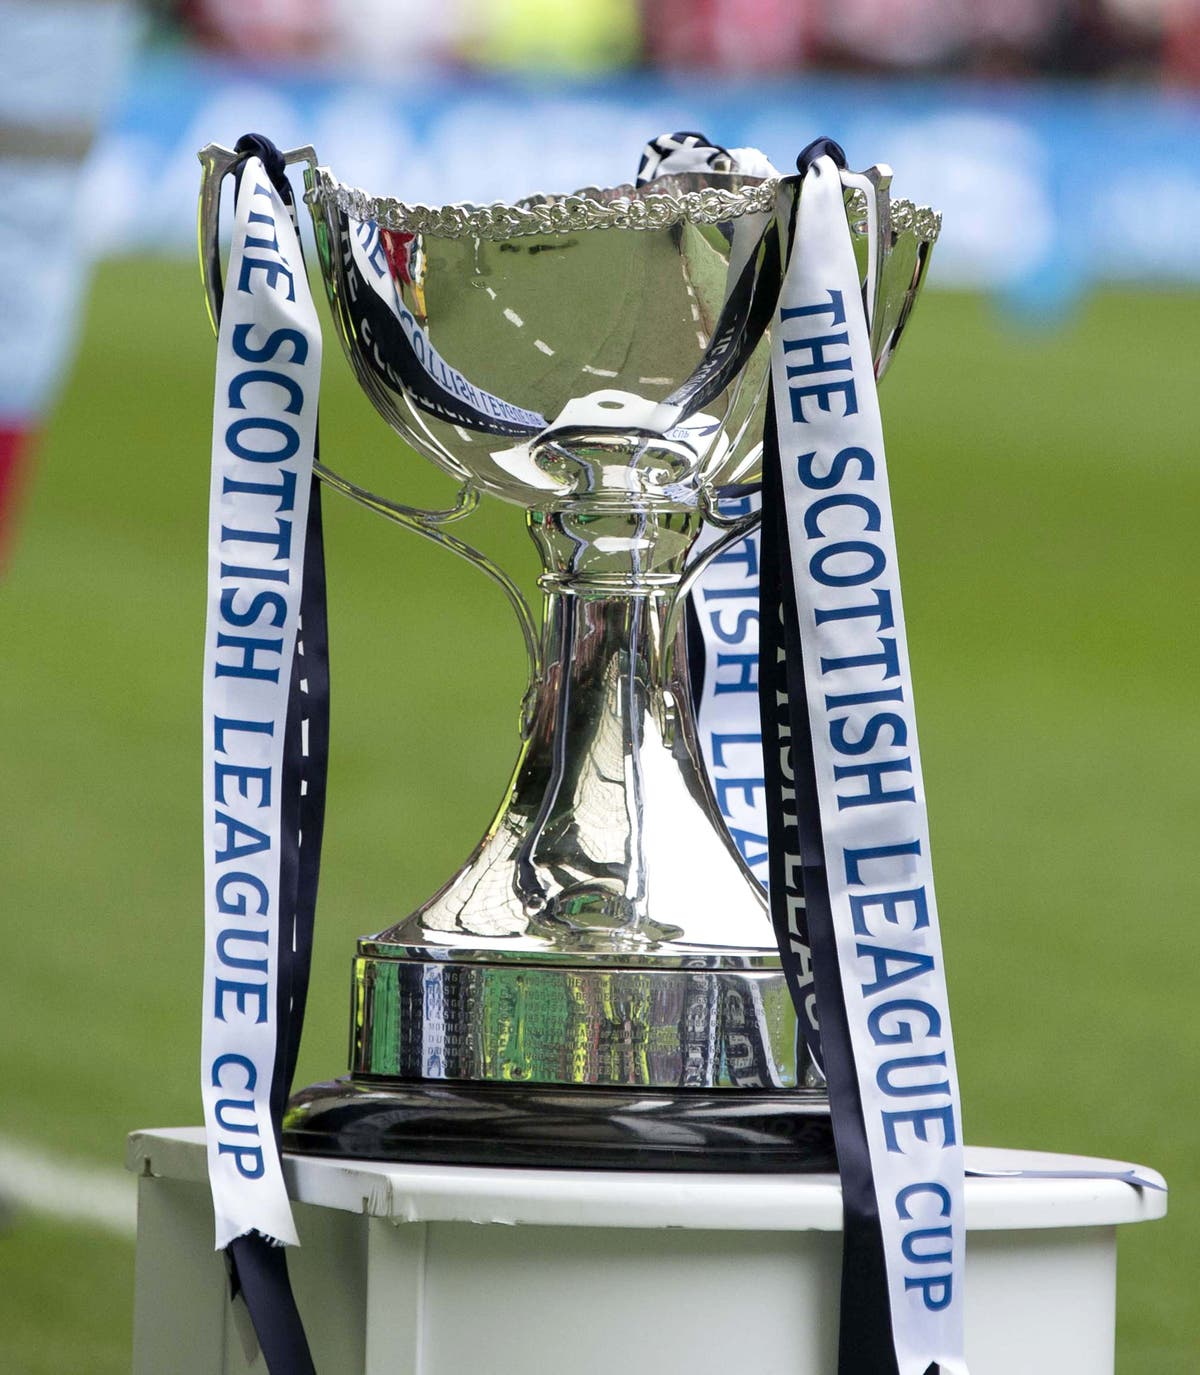 Motherwell face local rivals Airdrie in Premier Sports Cup